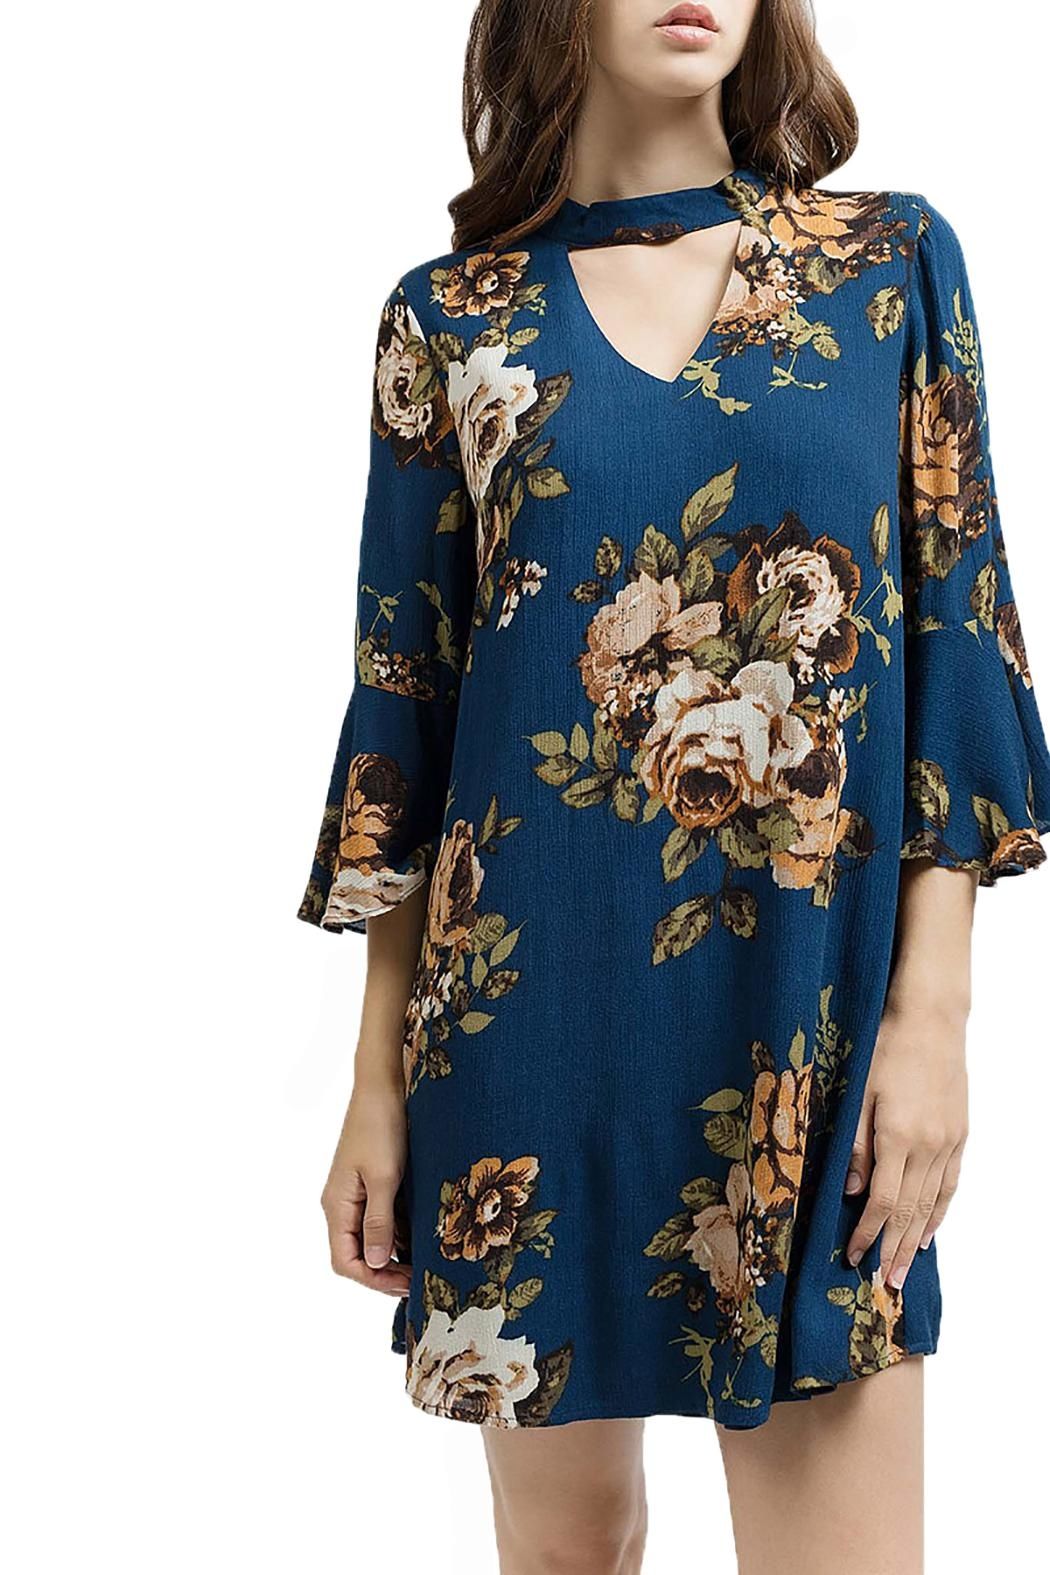 Blu Pepper Woven Floral Dress - Front Cropped Image